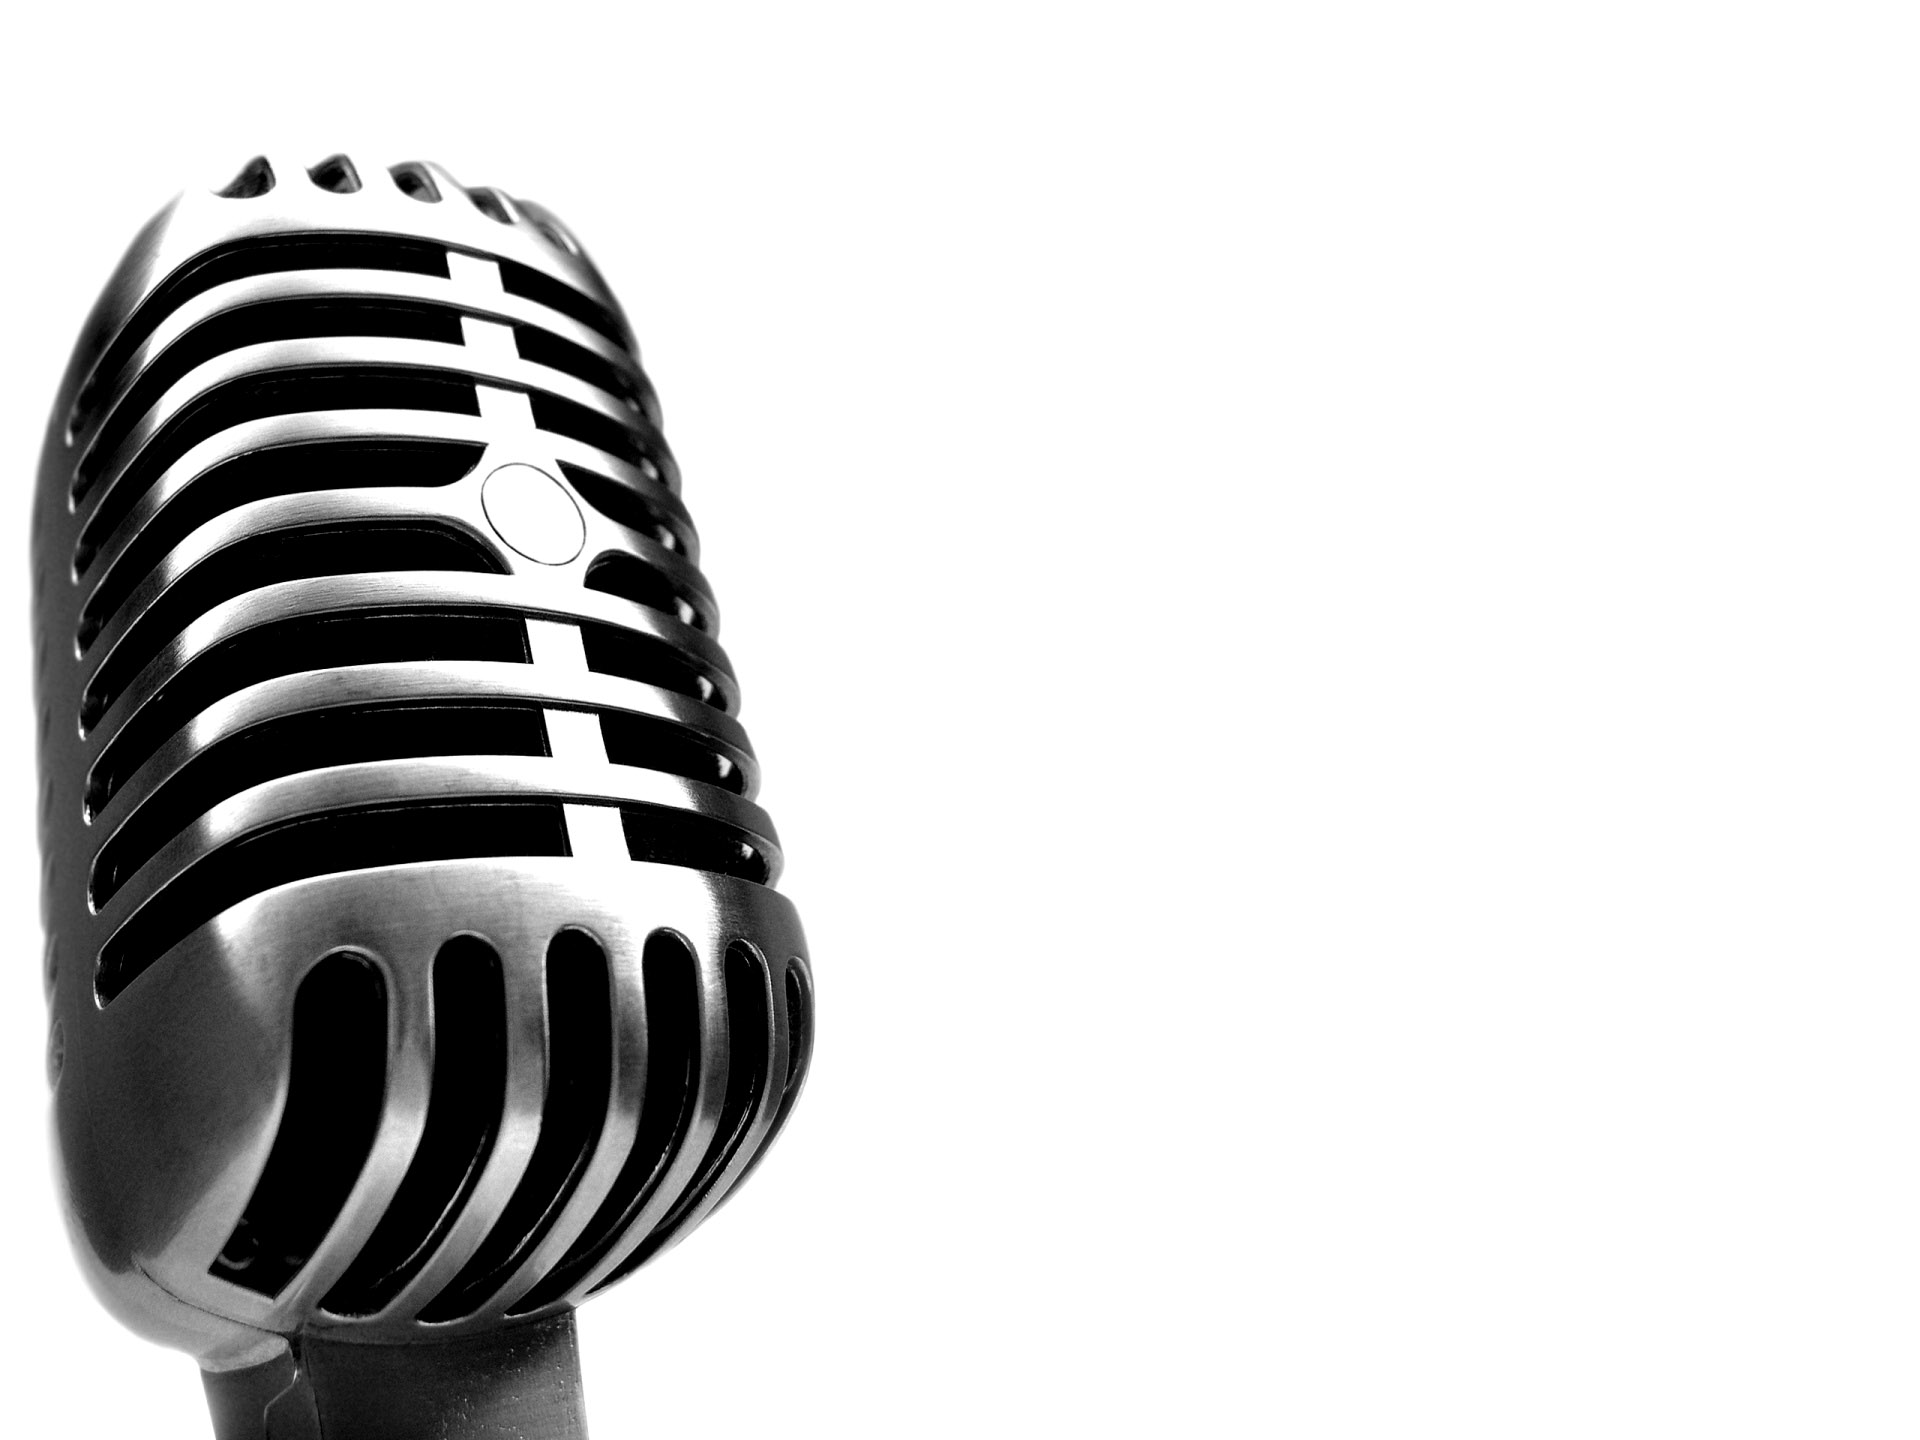 1920x1440 Mic White Background Images All White Background